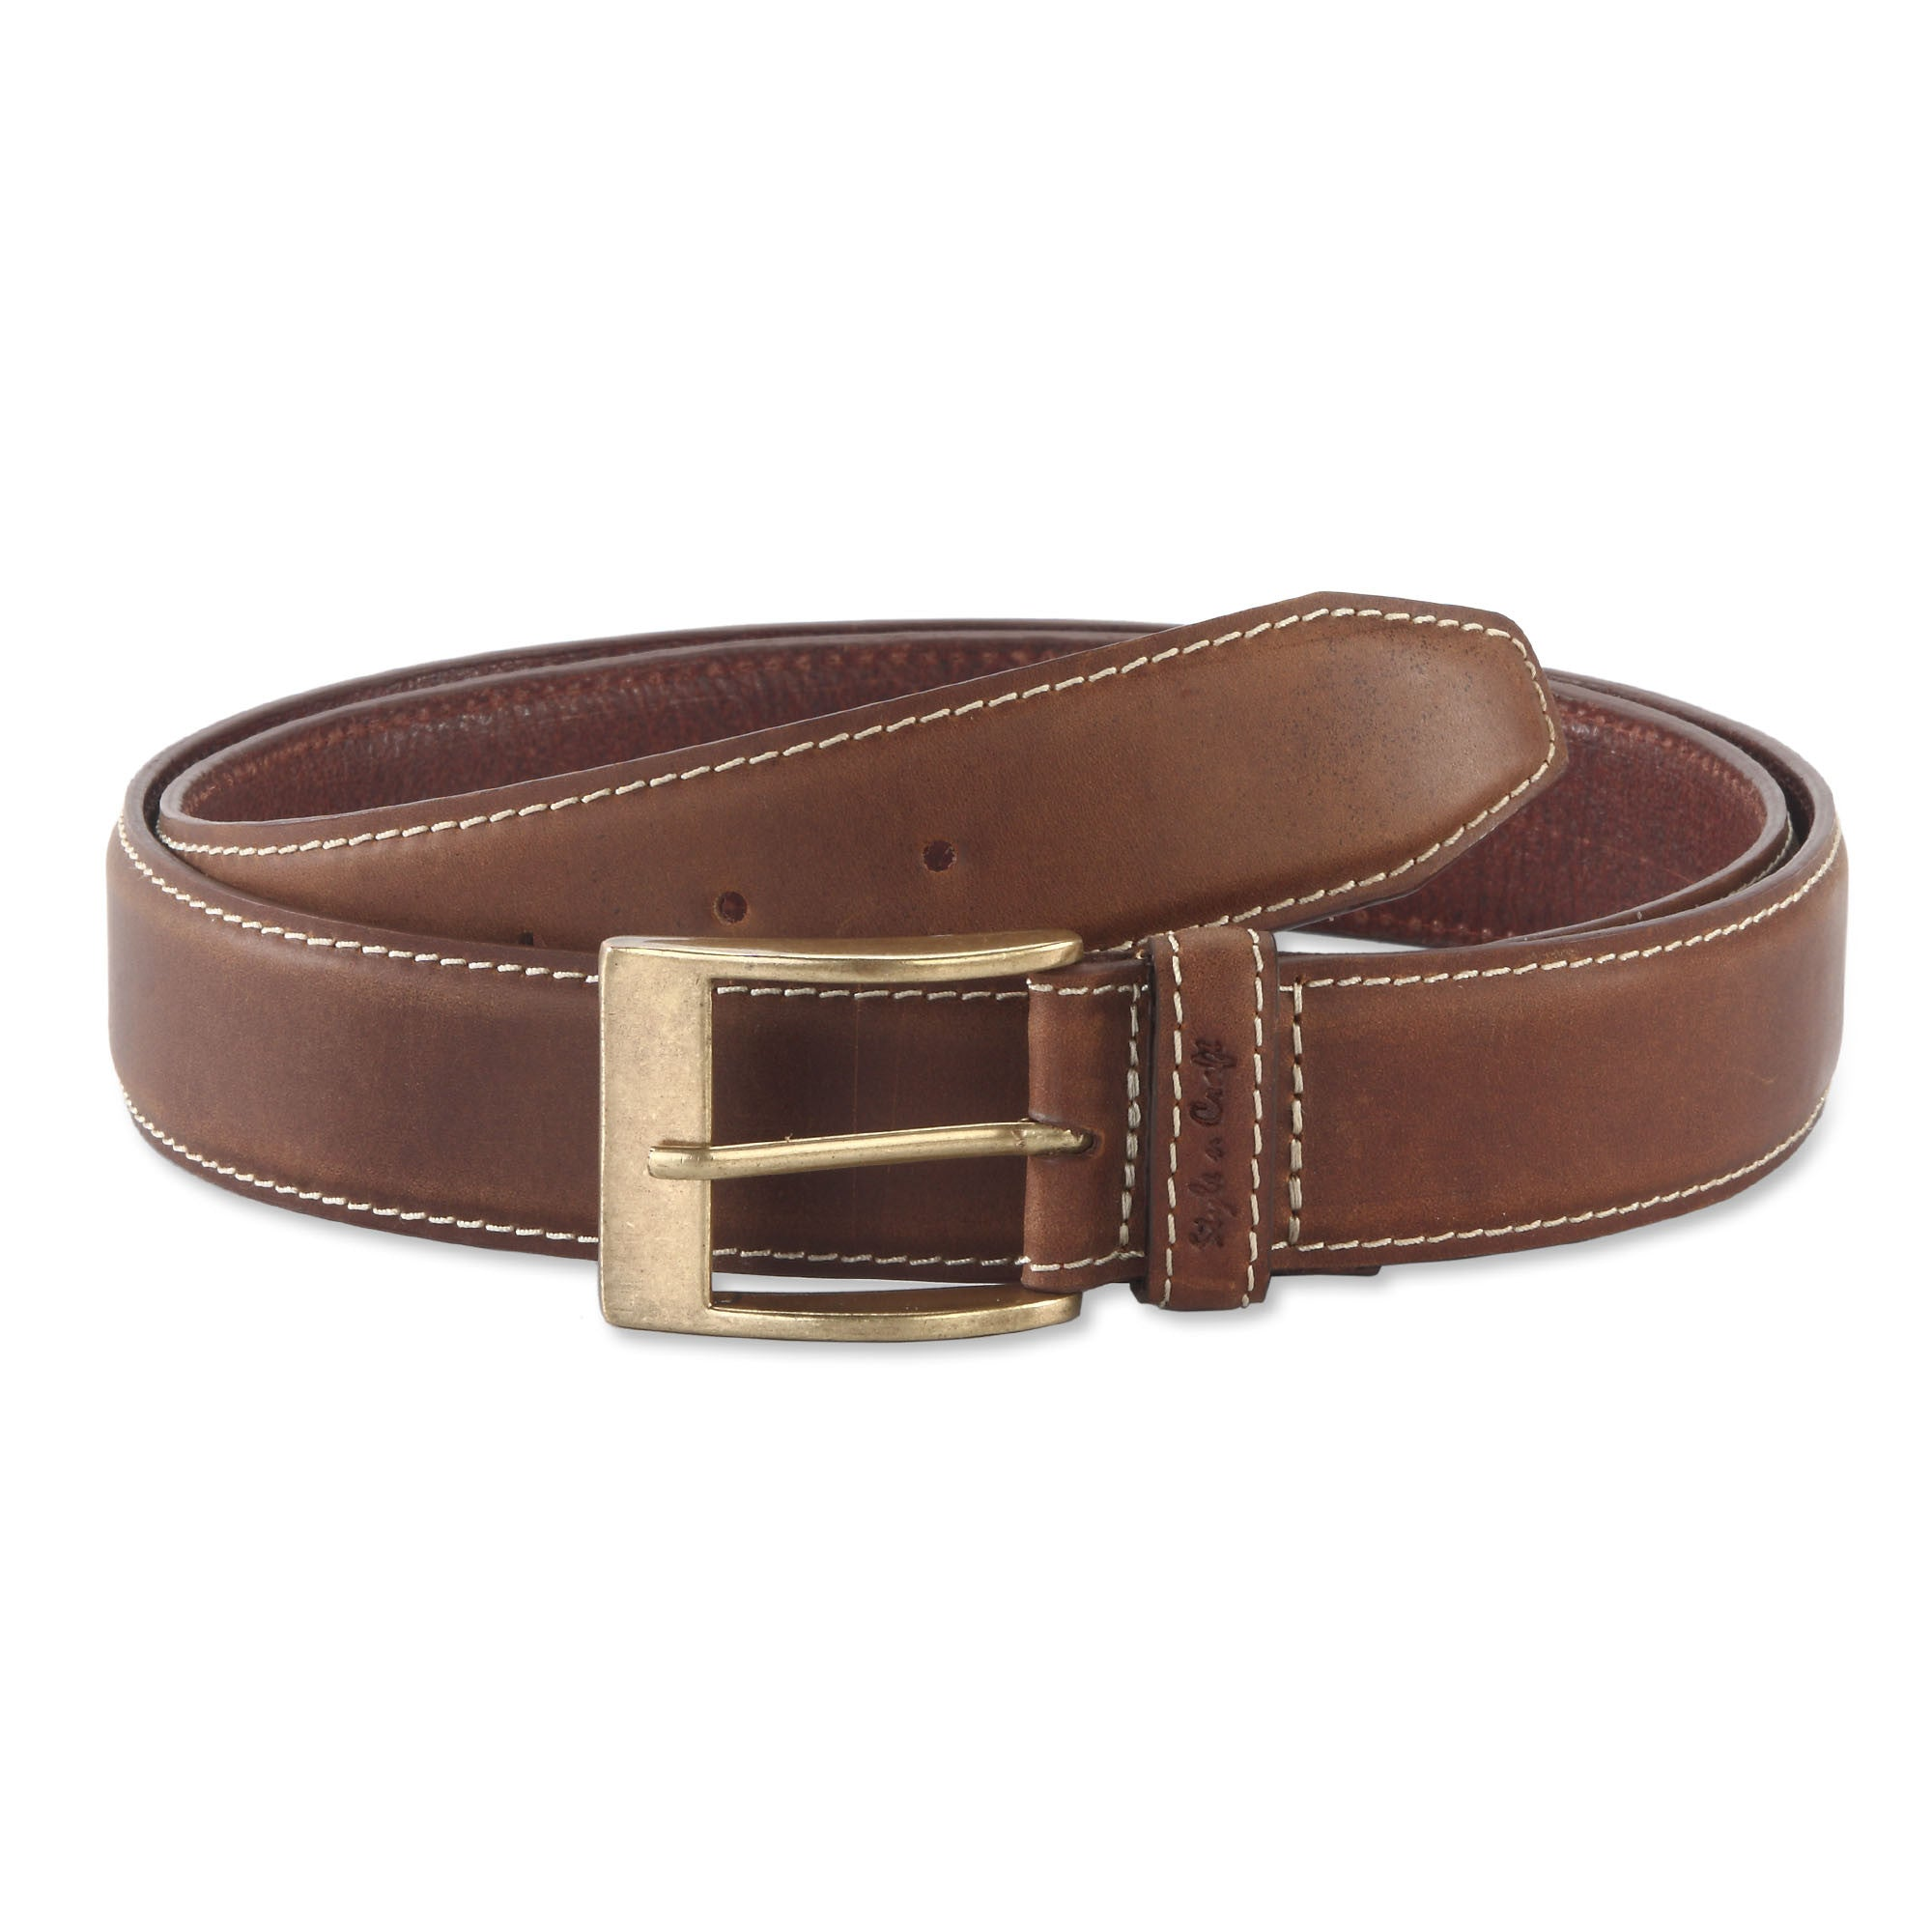 Style N Craft 391902-XL One and a Half Inch Leather Belt in Brown Color at Sears.com